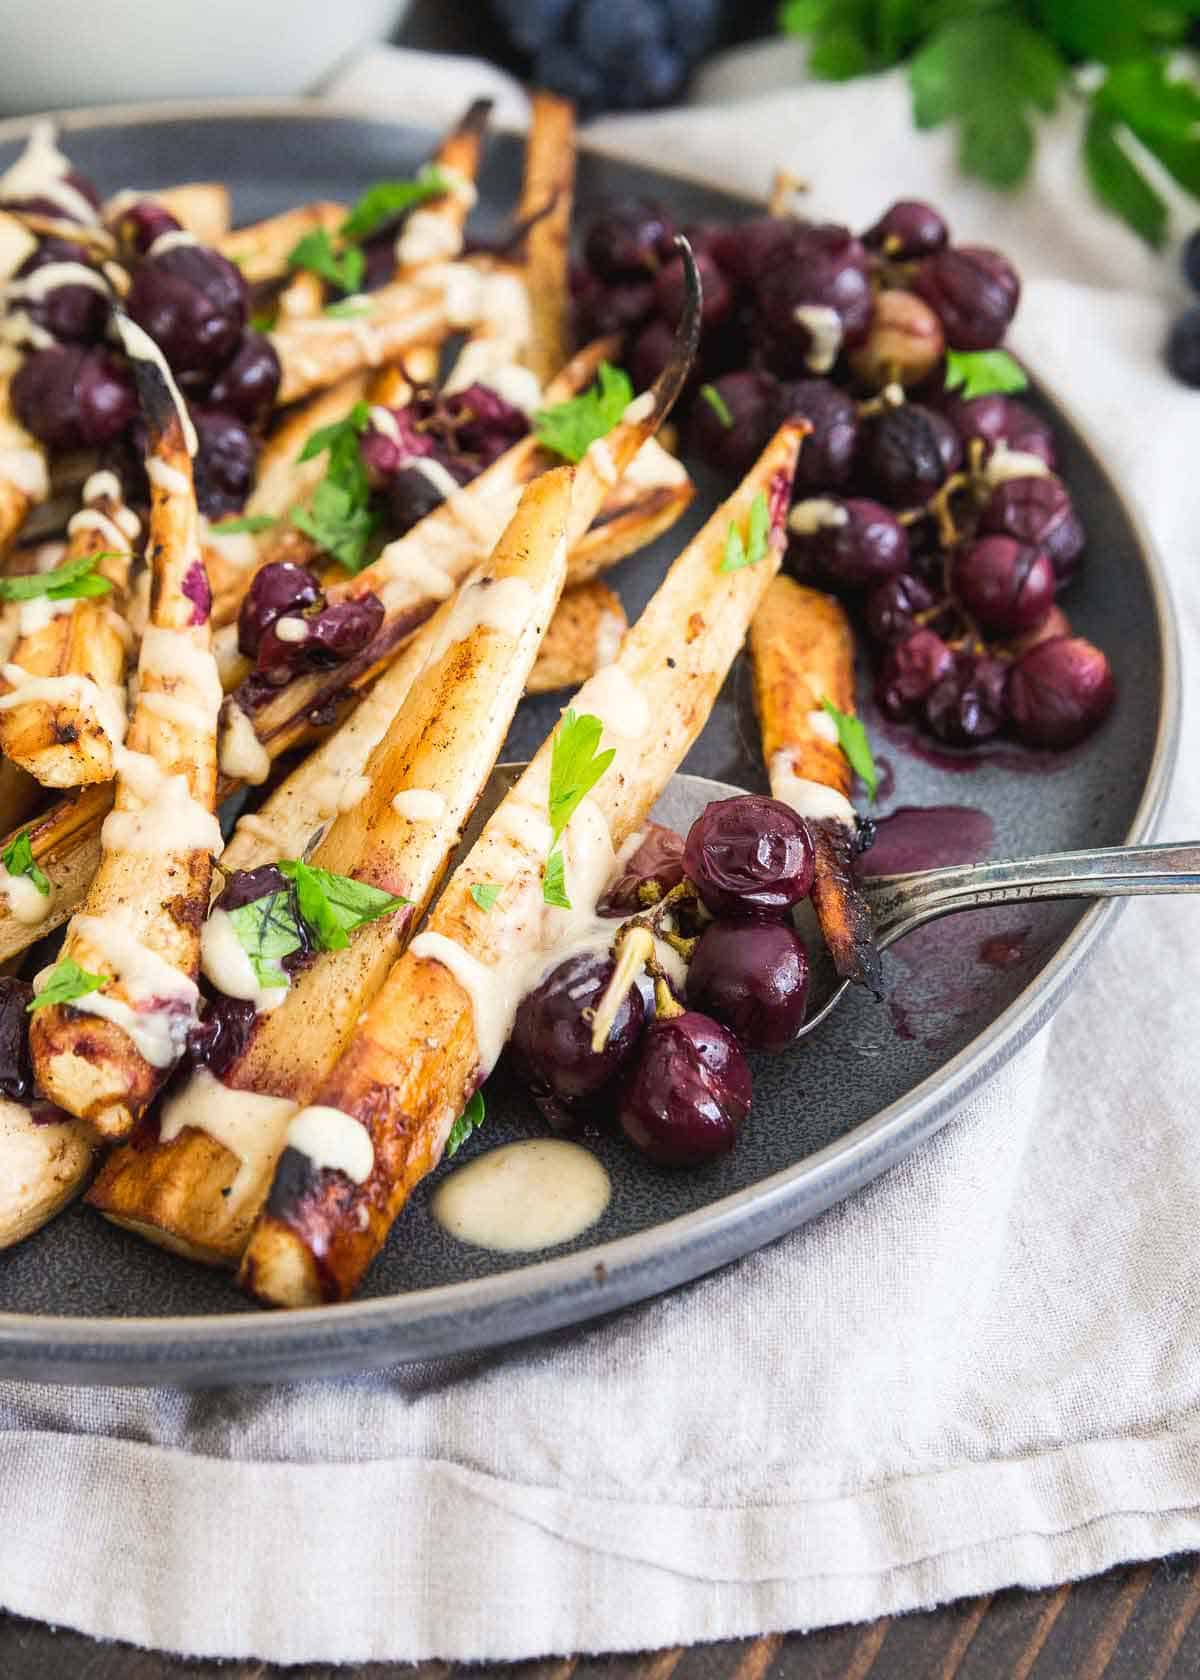 These sweet roasted parsnips and grapes make a show stopping side dish for any winter holiday meal.